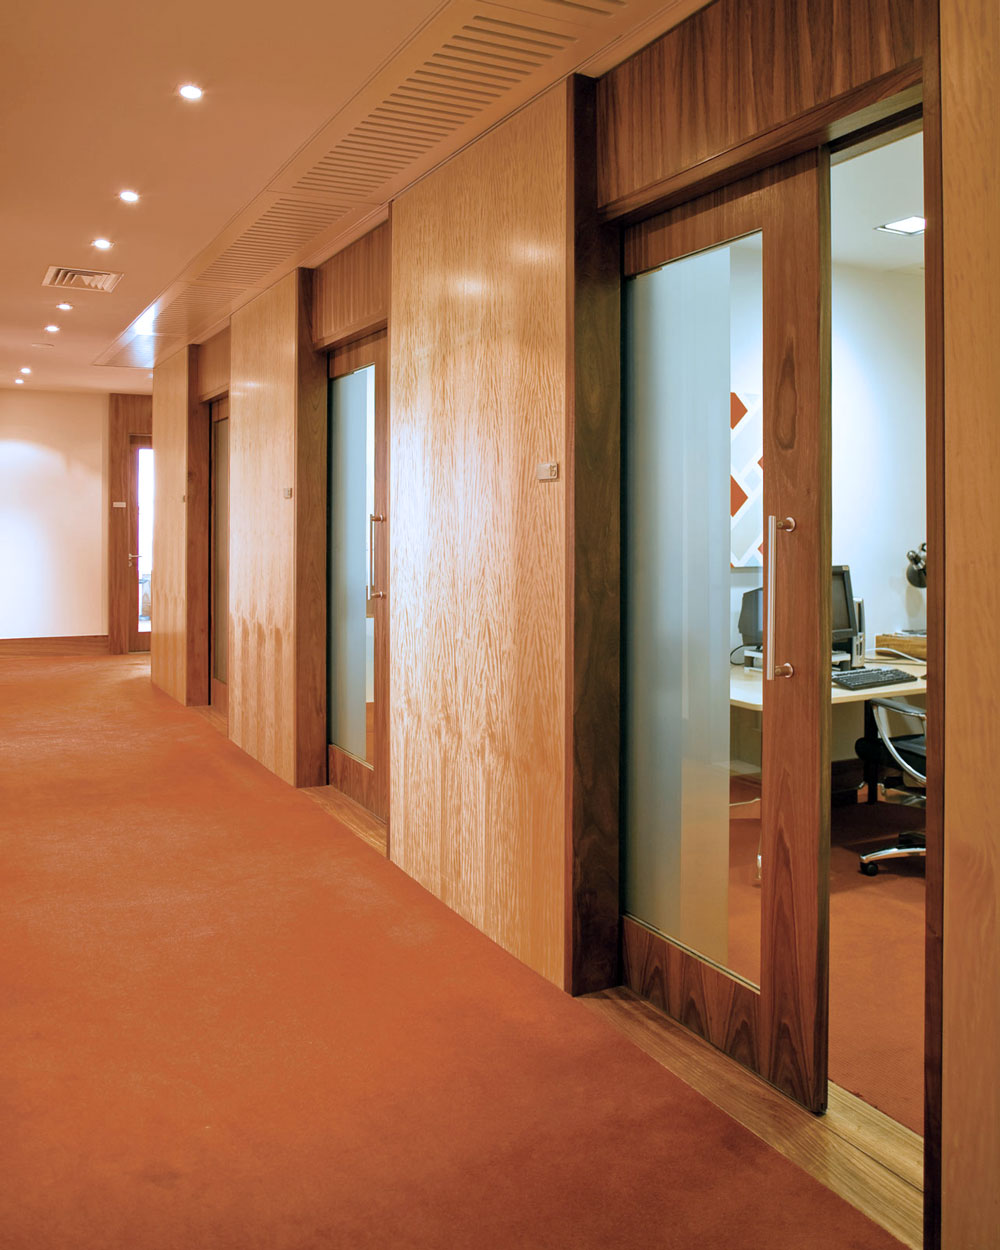 Ultimate with glazed timber door